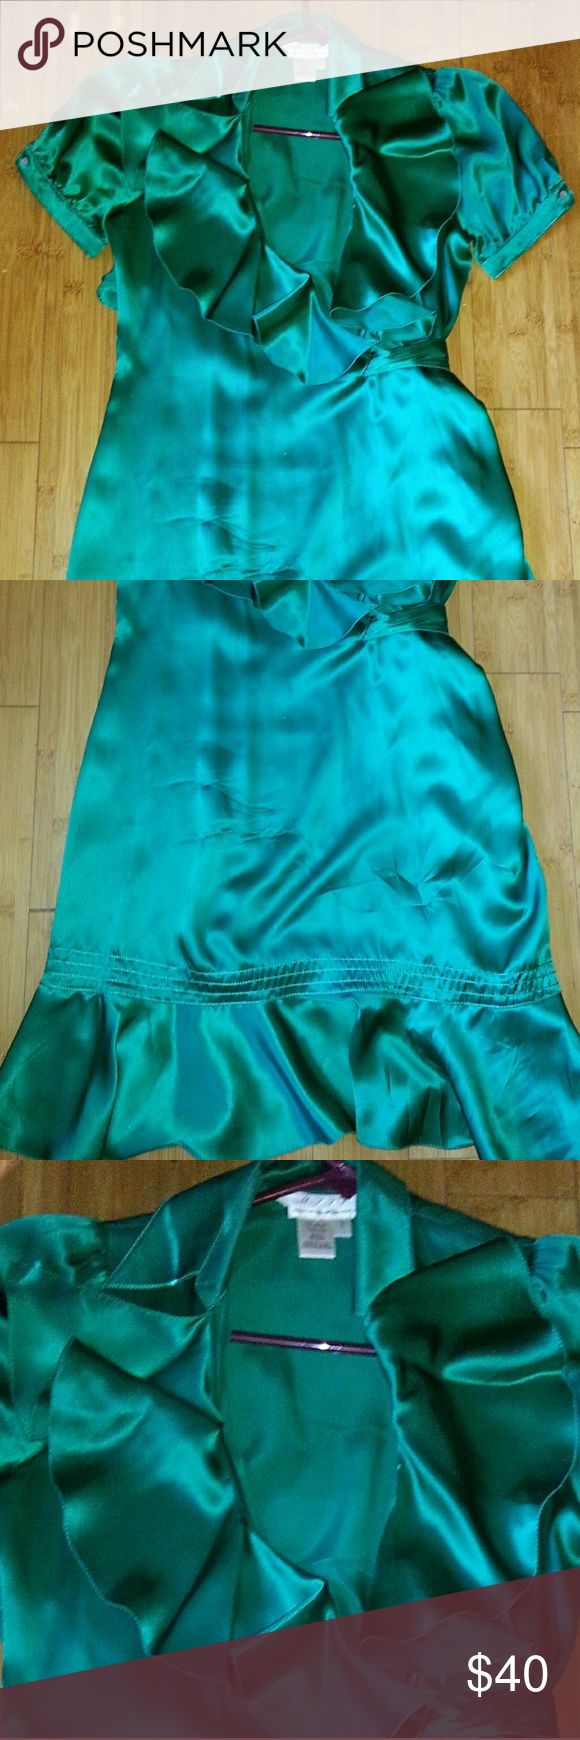 Gorg green 100% silk wrap dress, worn once! Sz S/4 Gorg green 100% silk wrap dress, worn once! Sz S/4 Couture brand, will update but thght was Guess, but think higher end. Neimans for spring wedding, only time worn. Perfect! Be cute for night out on St Patties! Lush Dresses